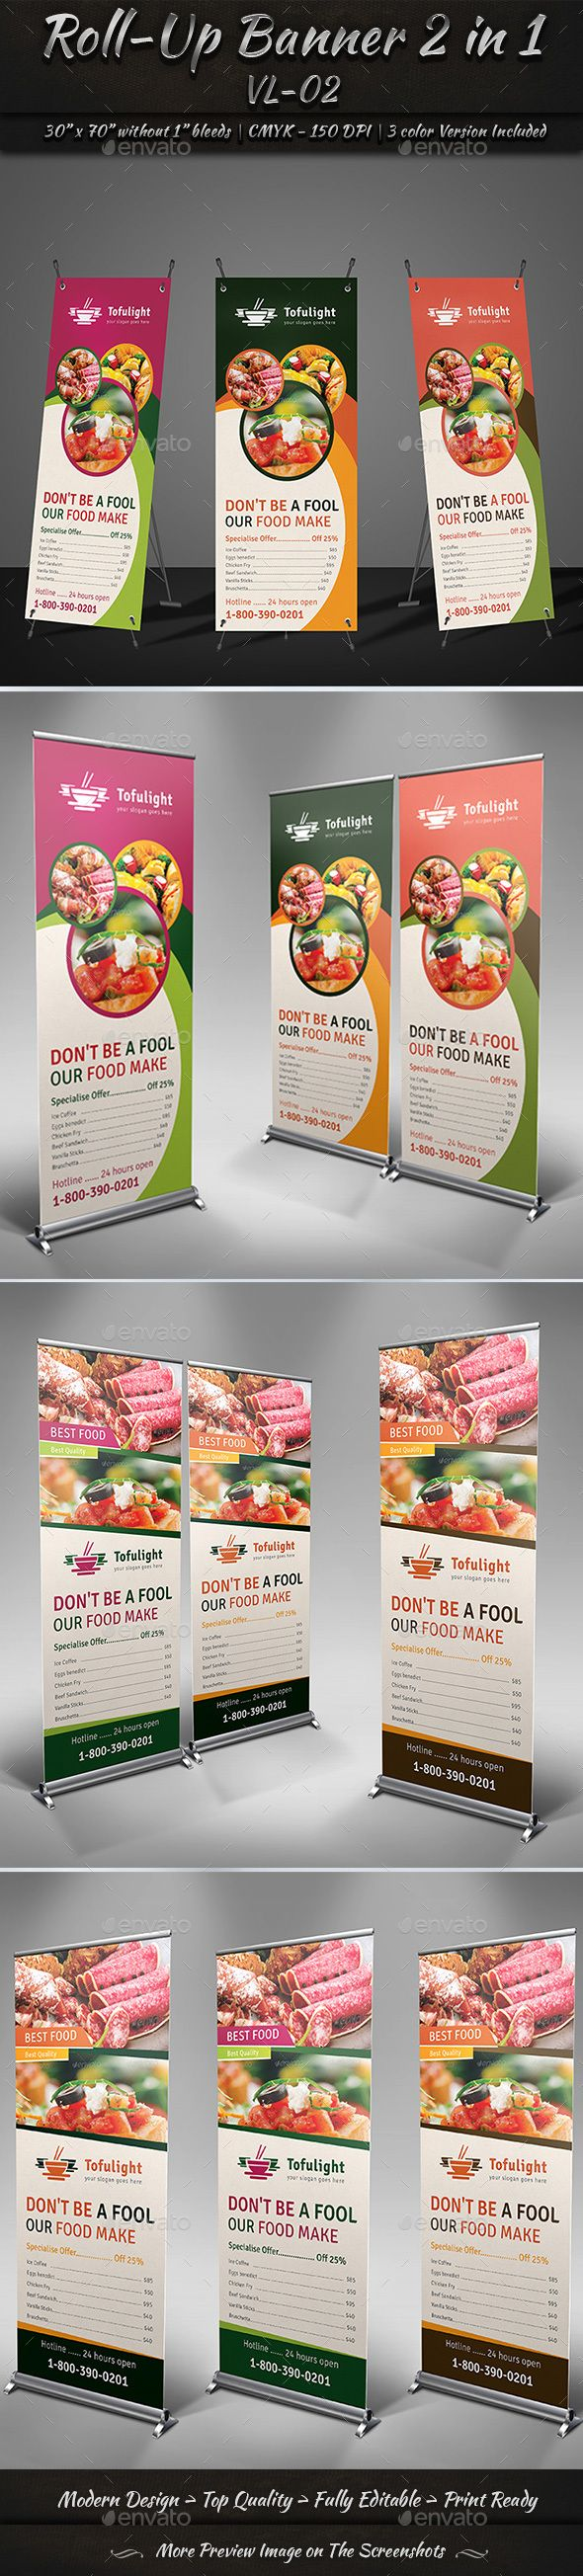 Roll-Up Banner 2 in 1 VL_02 by GraphicShaper Roll-Up Banner 2 in 1 is a designed...